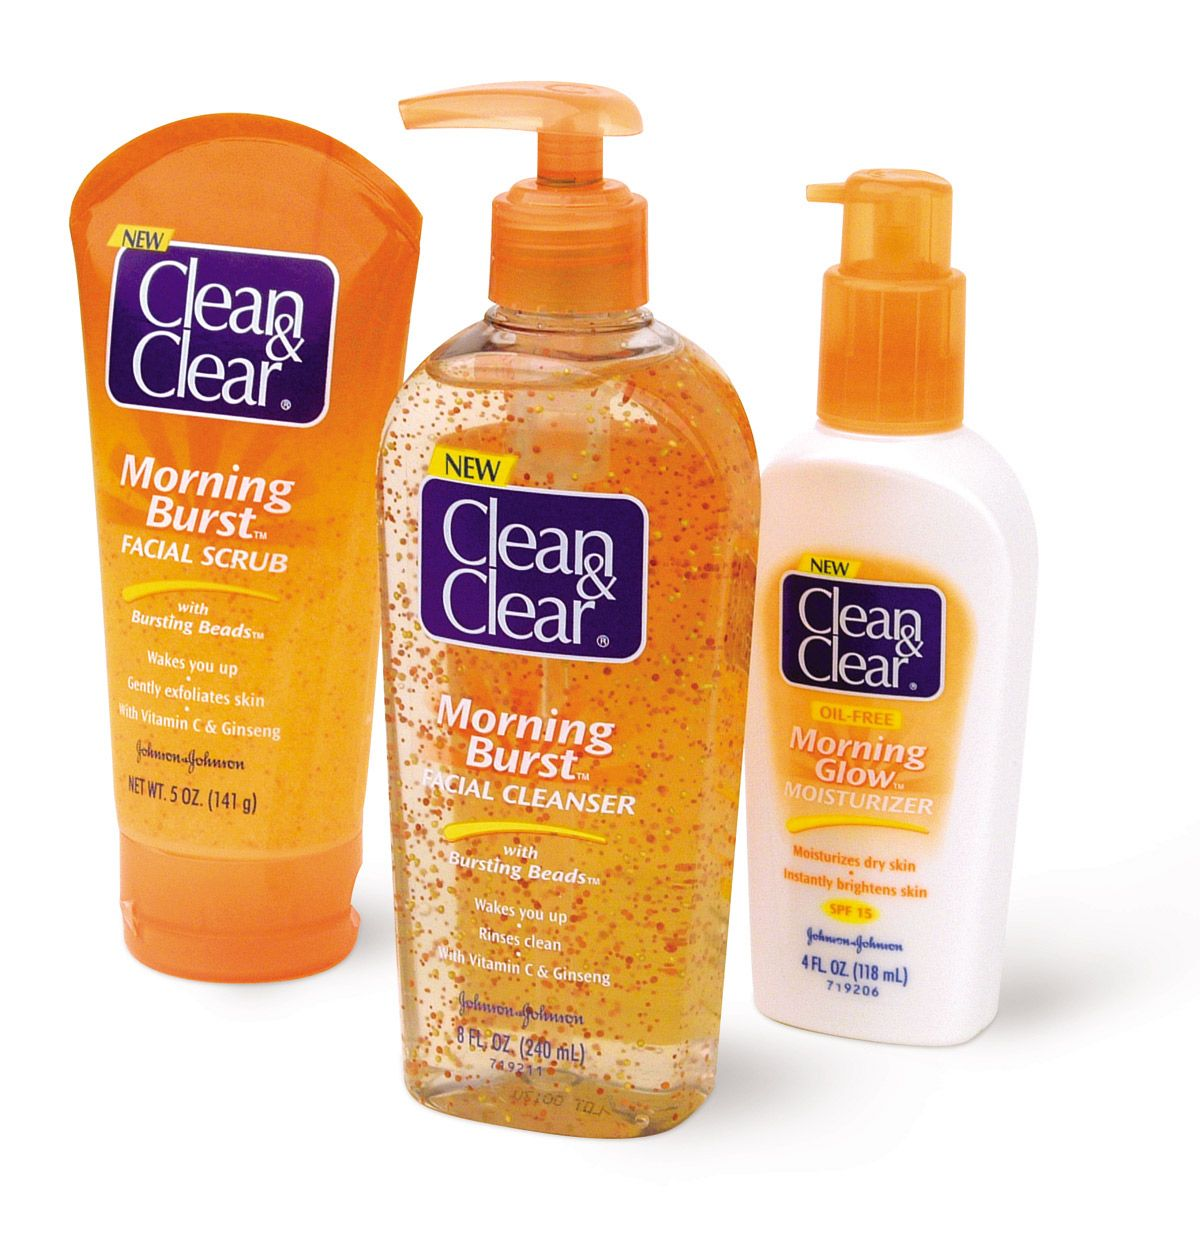 Clean Clear Only 1 64 At Walgreens Or 1 89 At Target With Coupon Http Killinitwithcoupons Com Blog P 2334 Face Skin Care Acne Face Wash Clear Acne